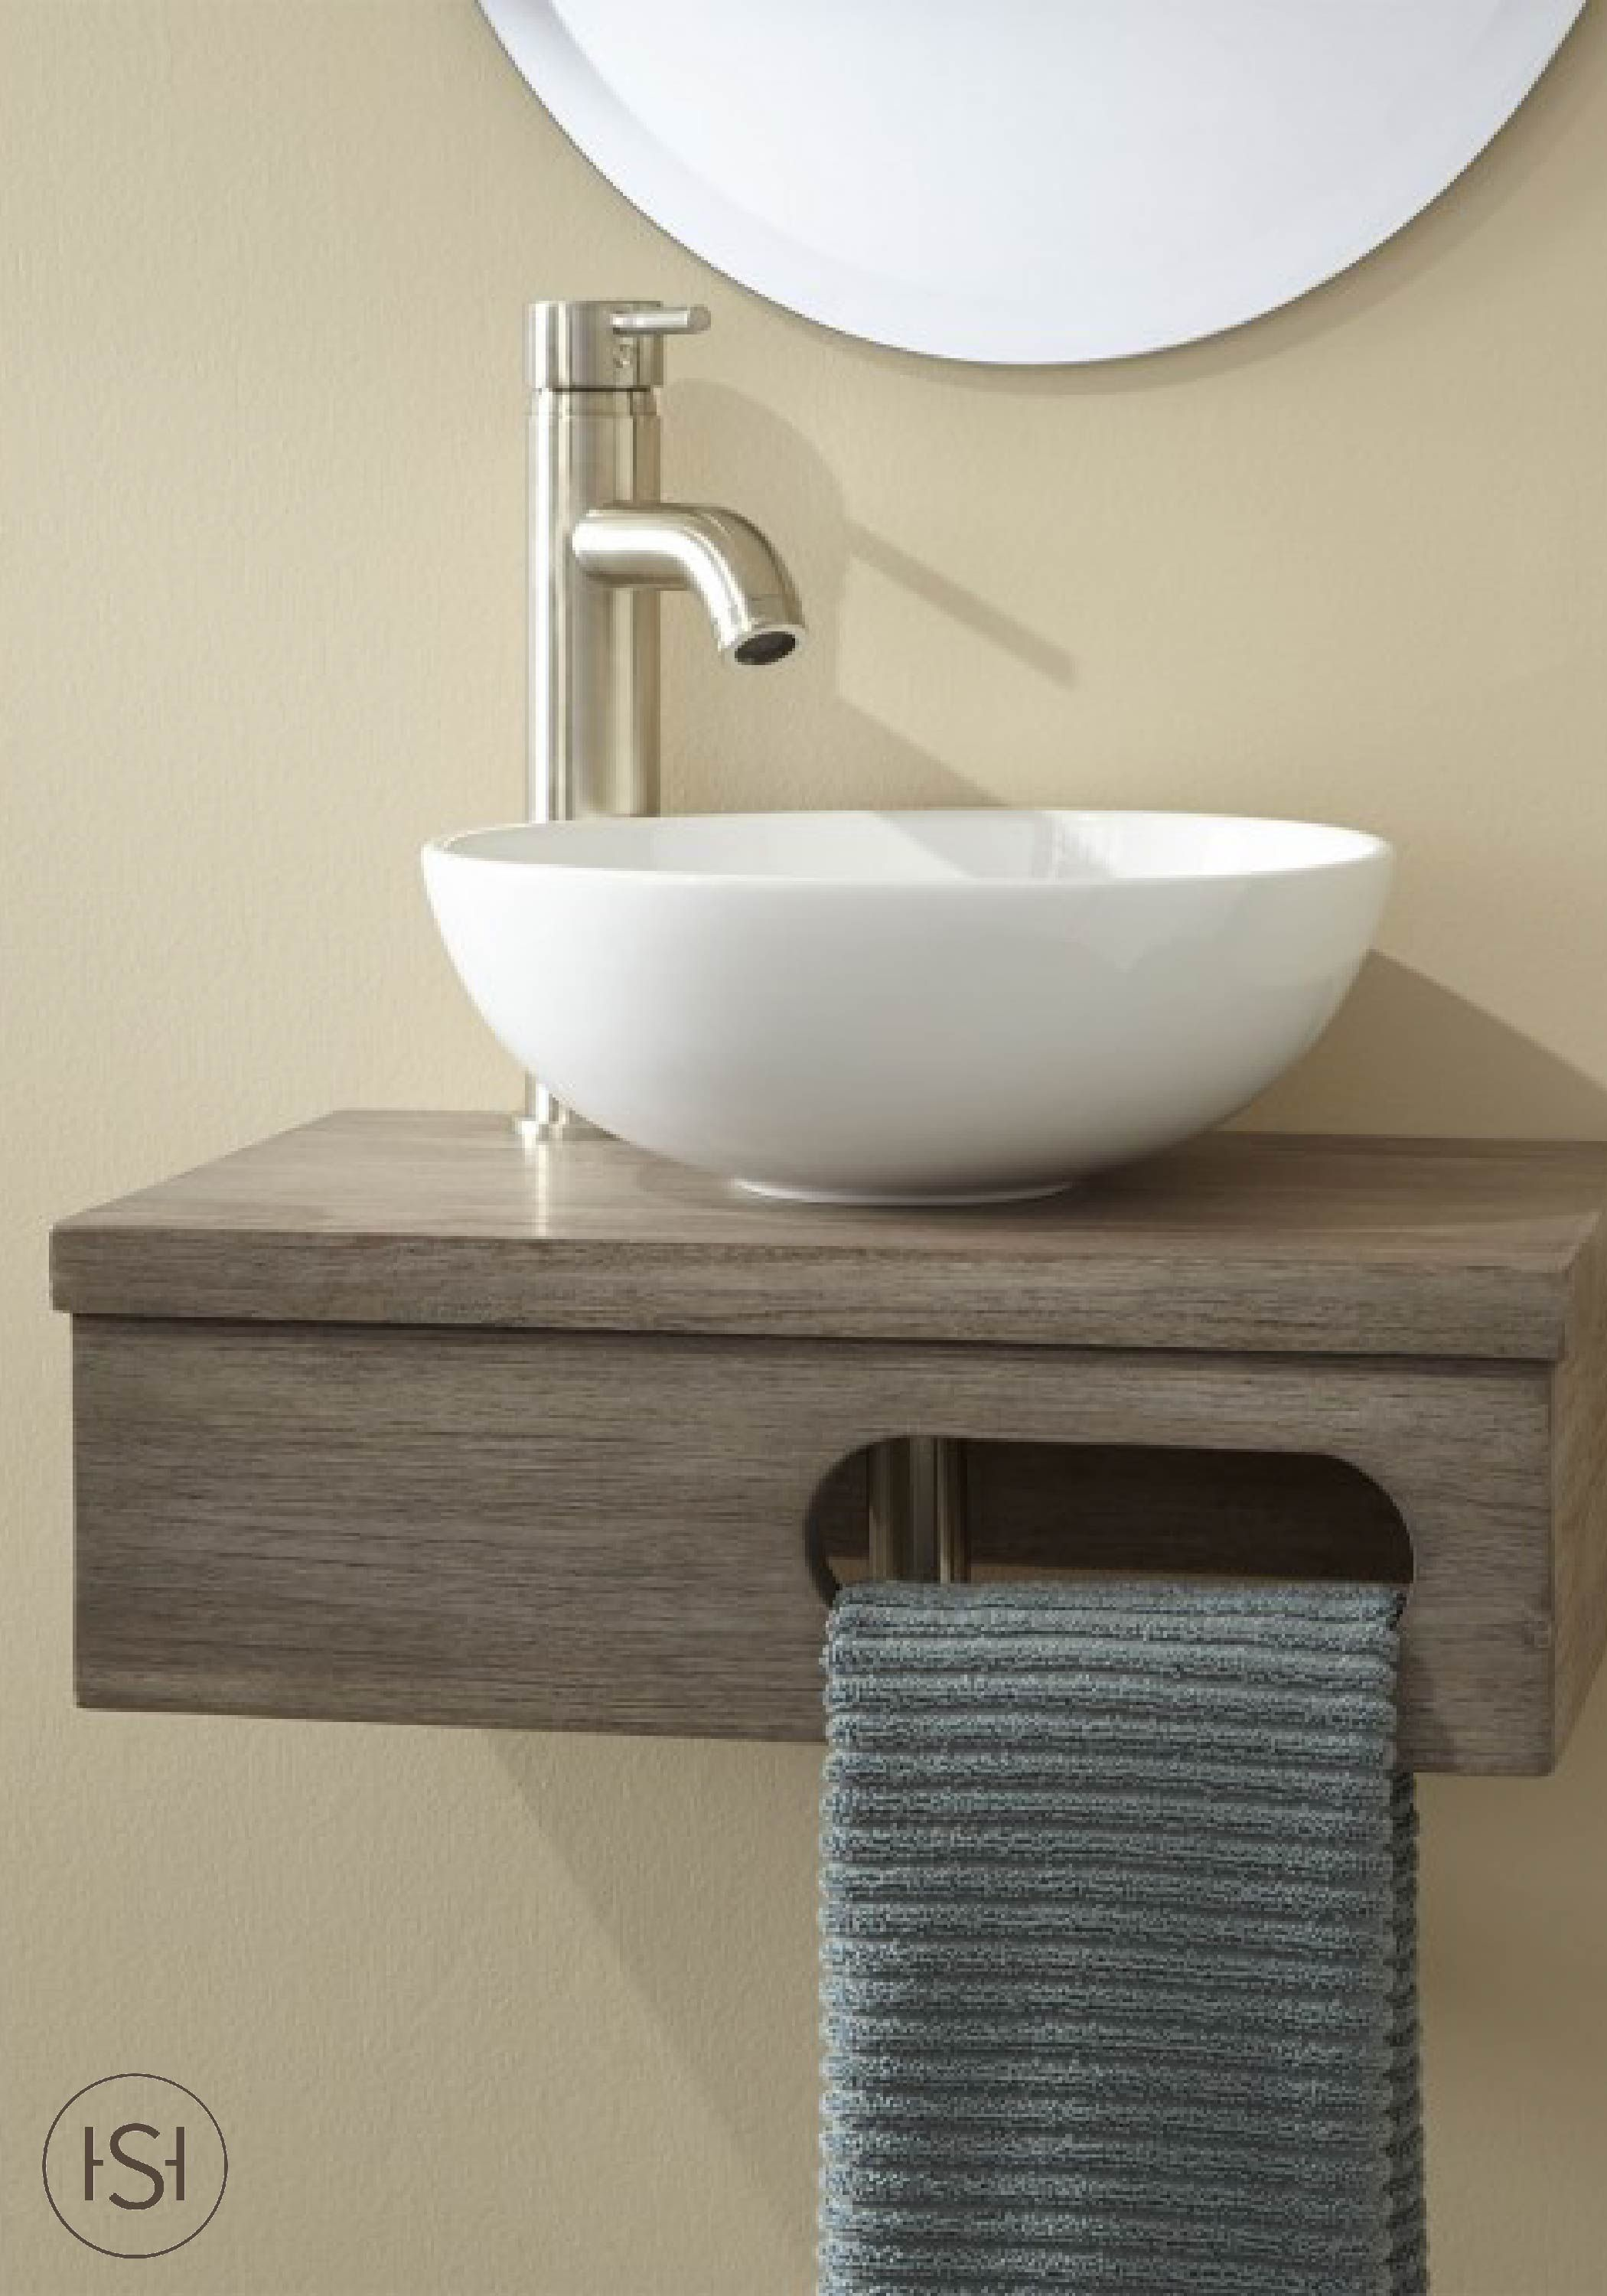 Function And Style Come Together In This Earthy Vanity By